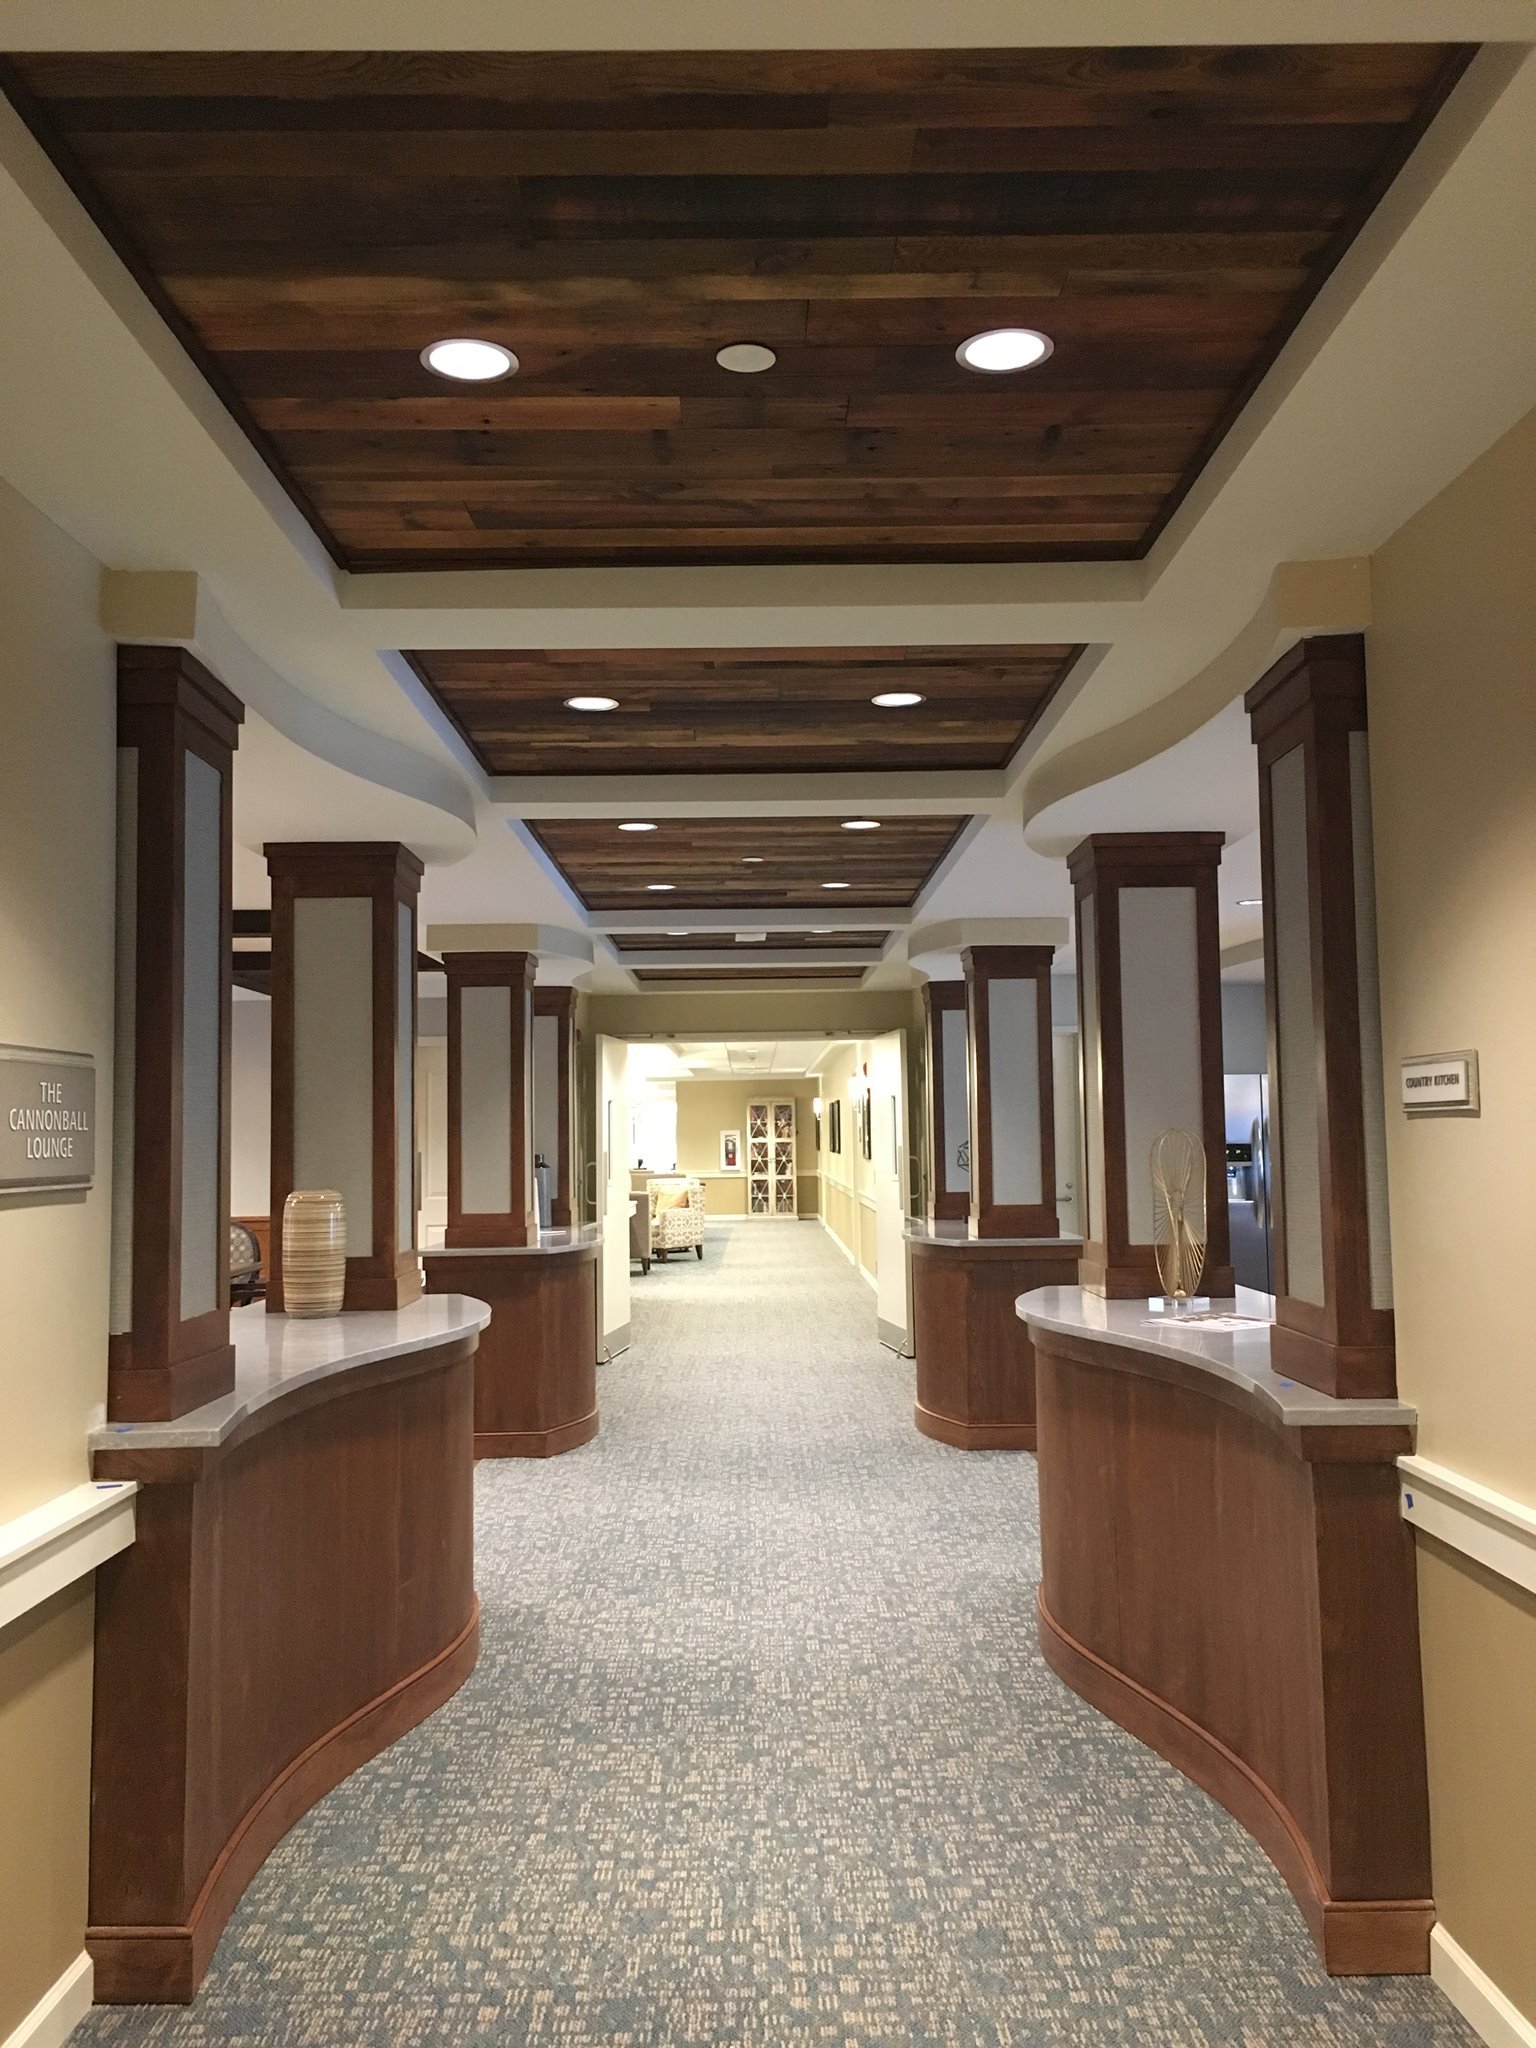 Whitney Place Assisted Living Residences, Sharon MA - Firm: Currier & Associates / Wellesley Design Consultants